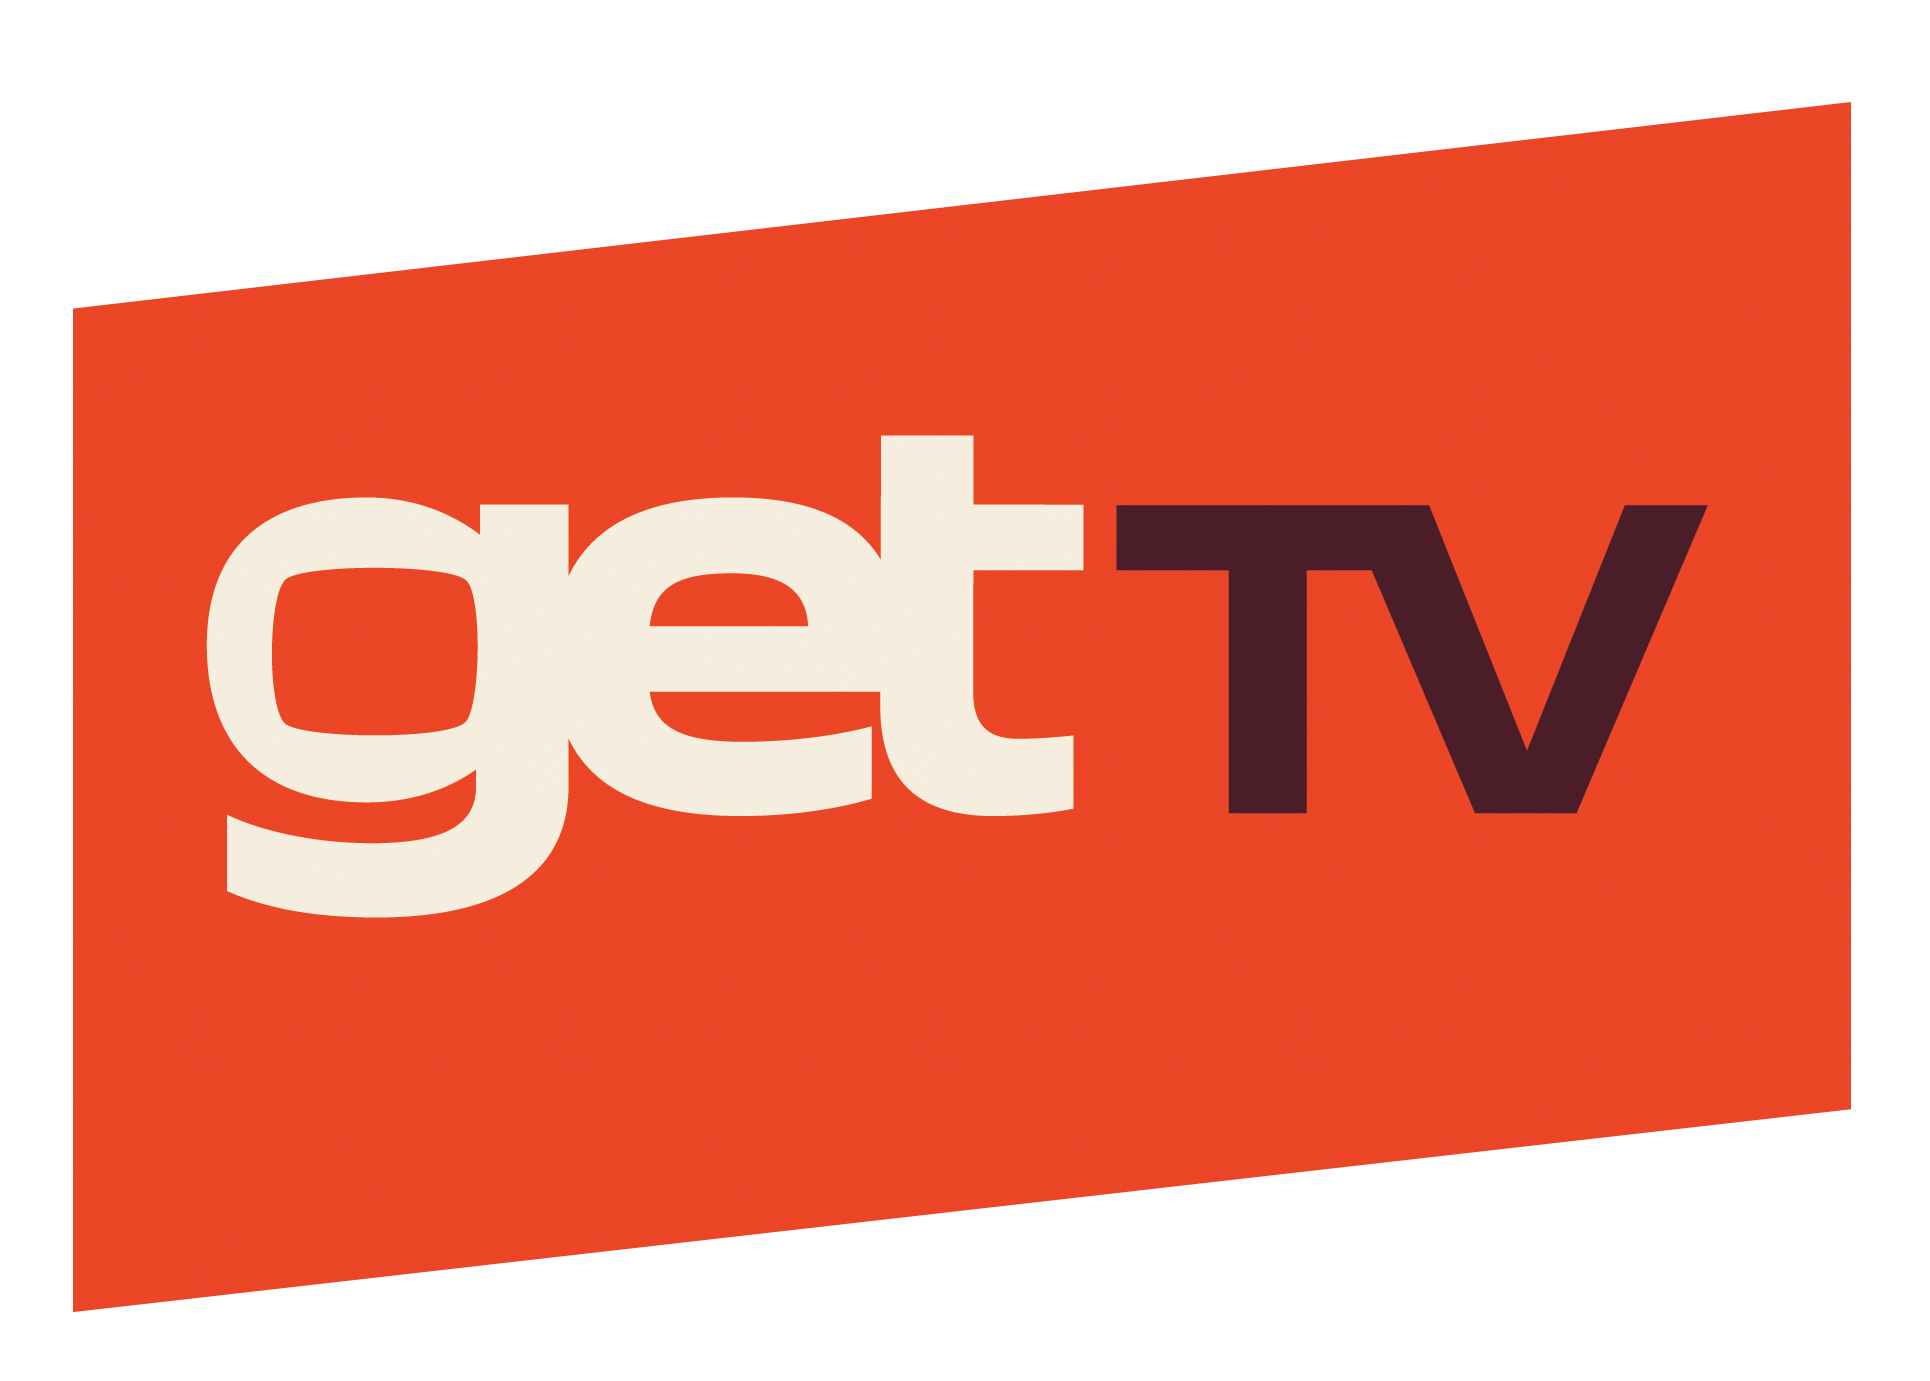 getTV is a free-to-air broadcast television digital network dedicated to showcasing Hollywood's legendary movies through 1960. (PRNewsFoto/Sony Pictures Television) (PRNewsFoto/SONY PICTURES TELEVISION)